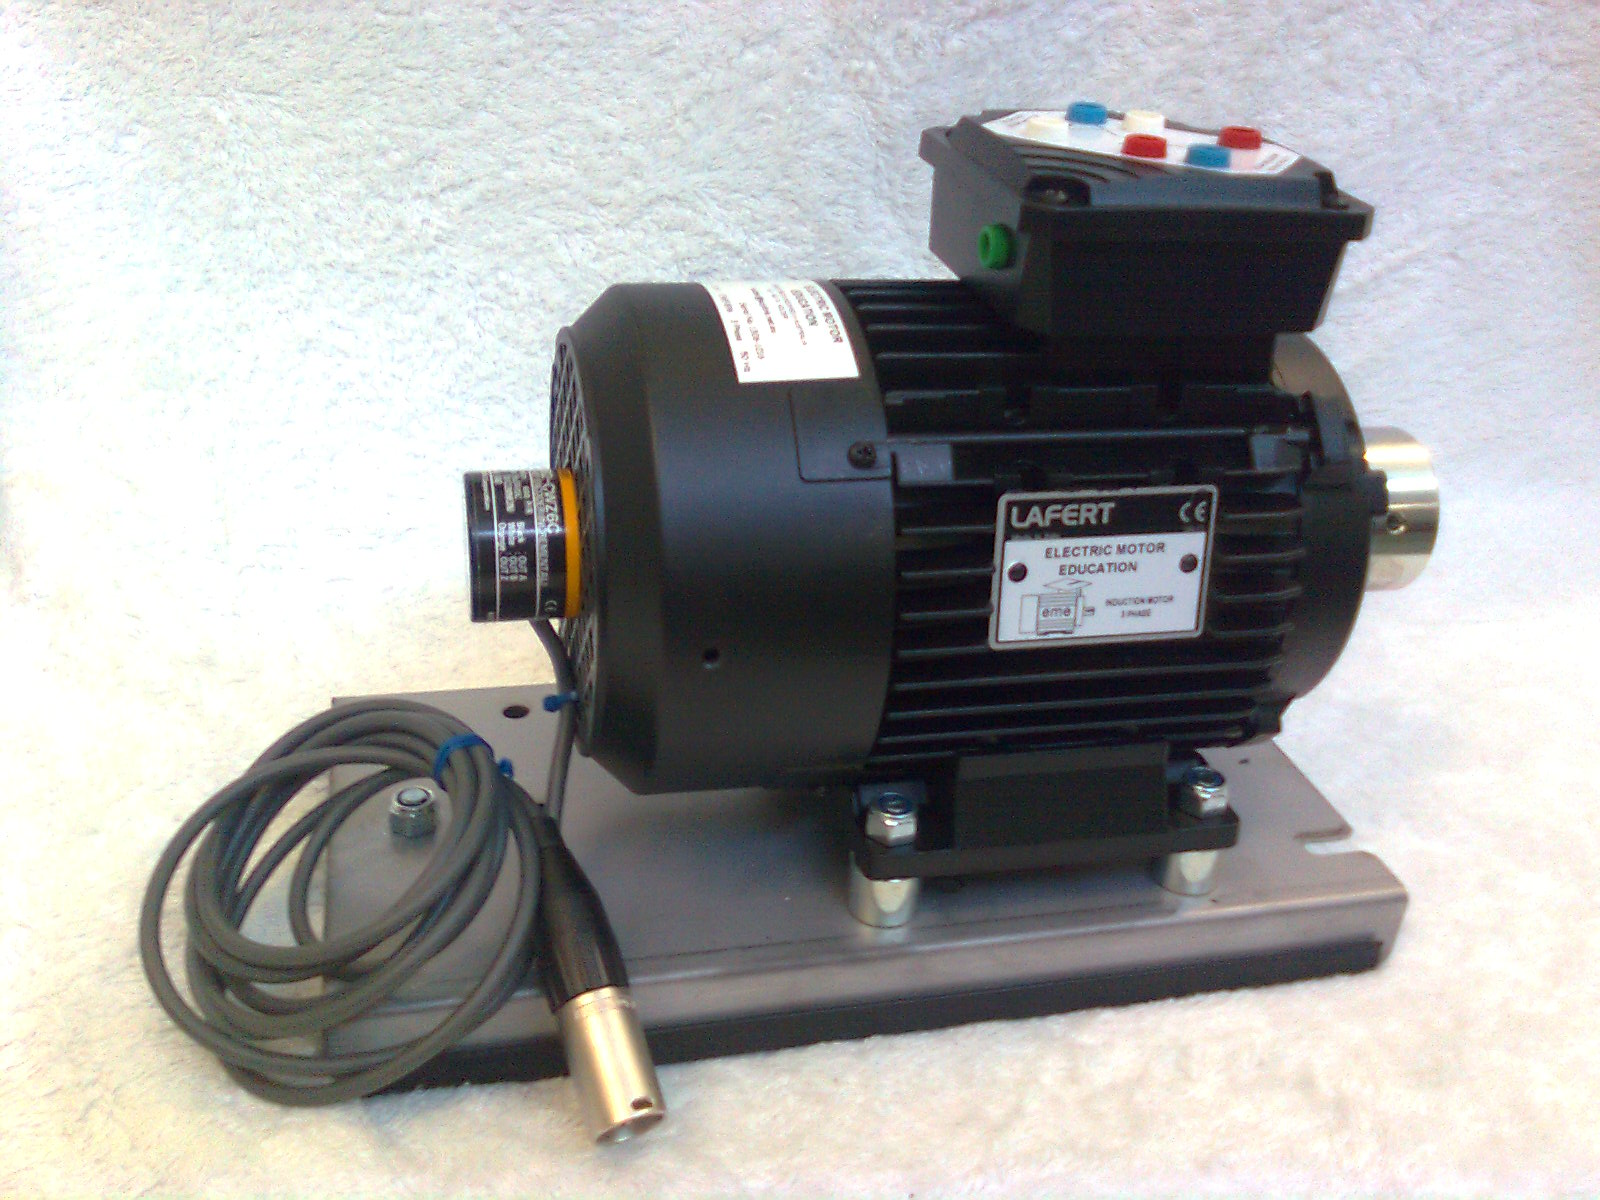 71-3-L050-A : Motor - 3 phase -This is a 71-3-L004-A motor fitted with a Image